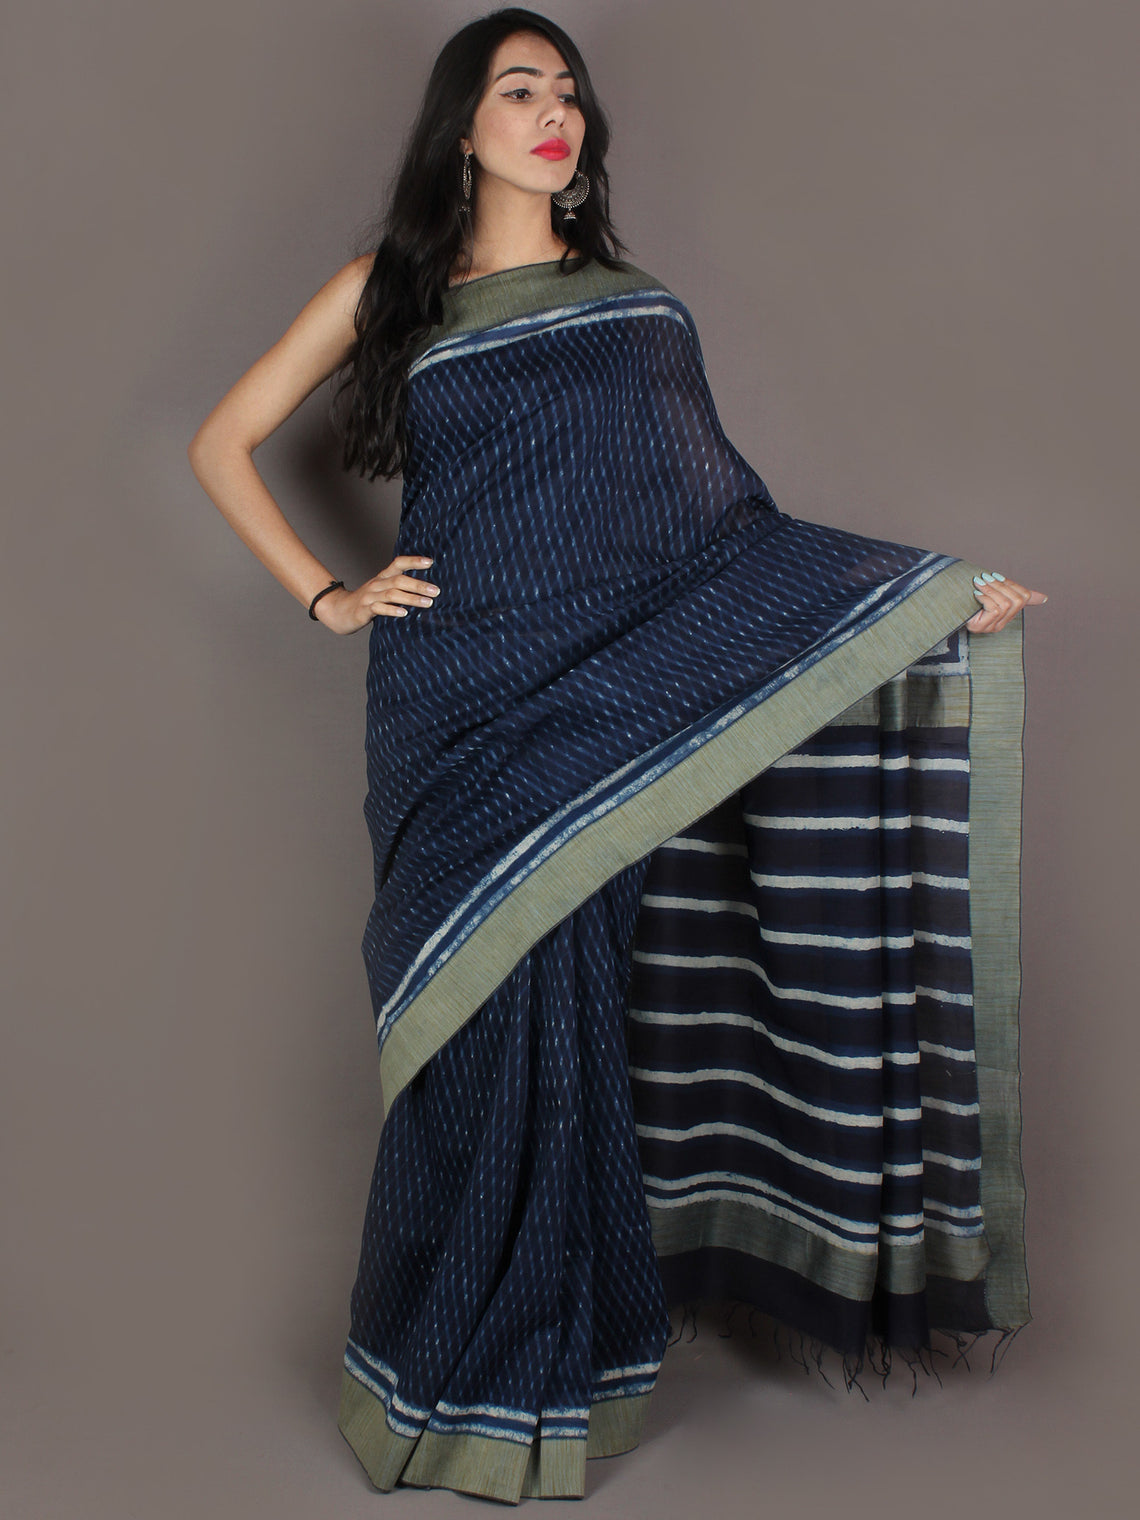 Indigo White Hand Block Printed in Natural Colors Chanderi Saree With Geecha Border - S03170973